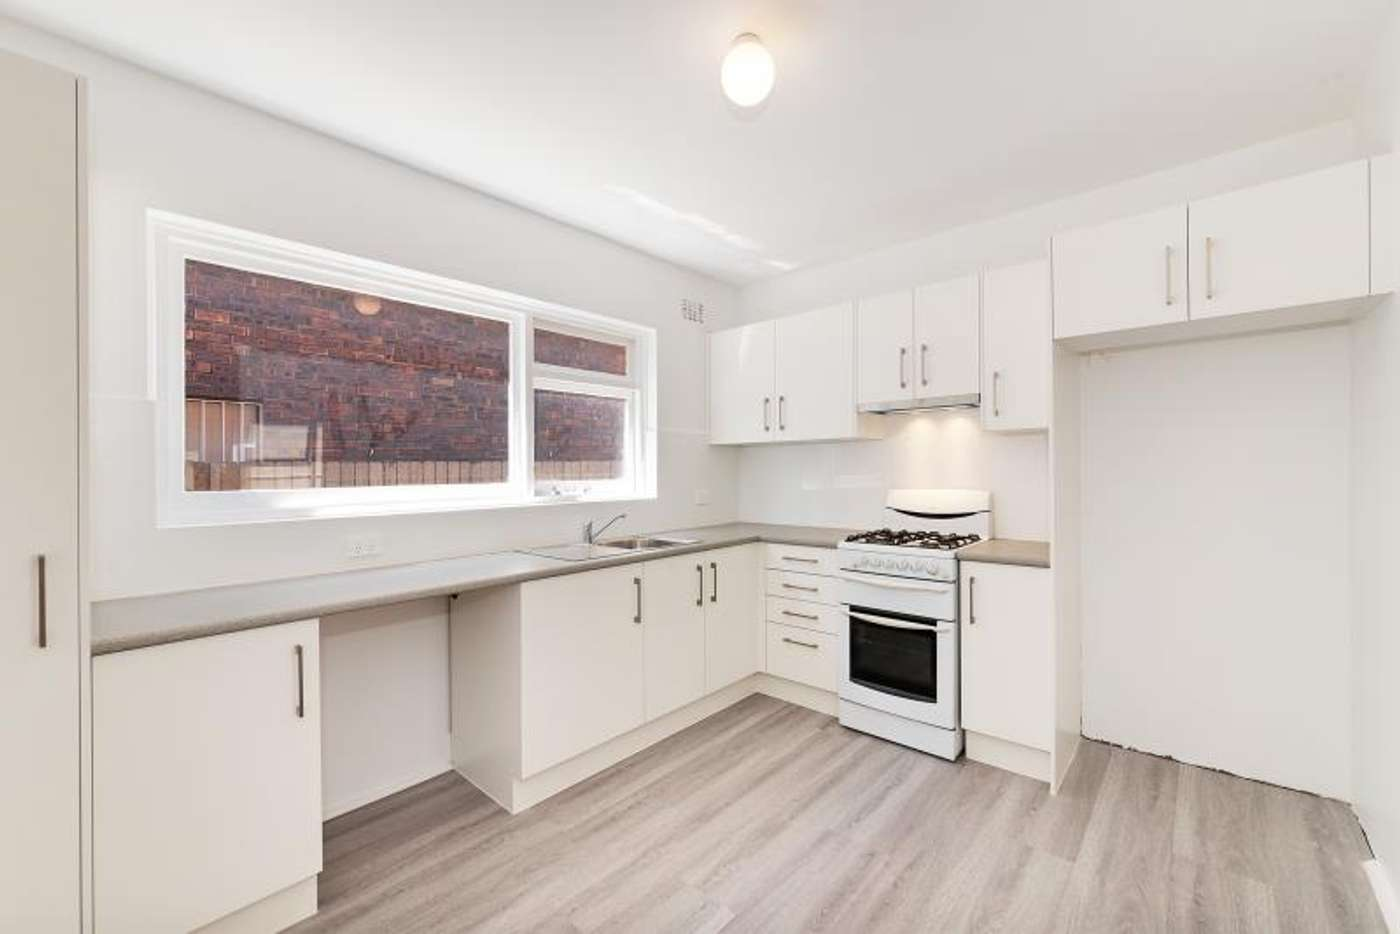 Main view of Homely apartment listing, 1/47 Oberon Street, Randwick NSW 2031